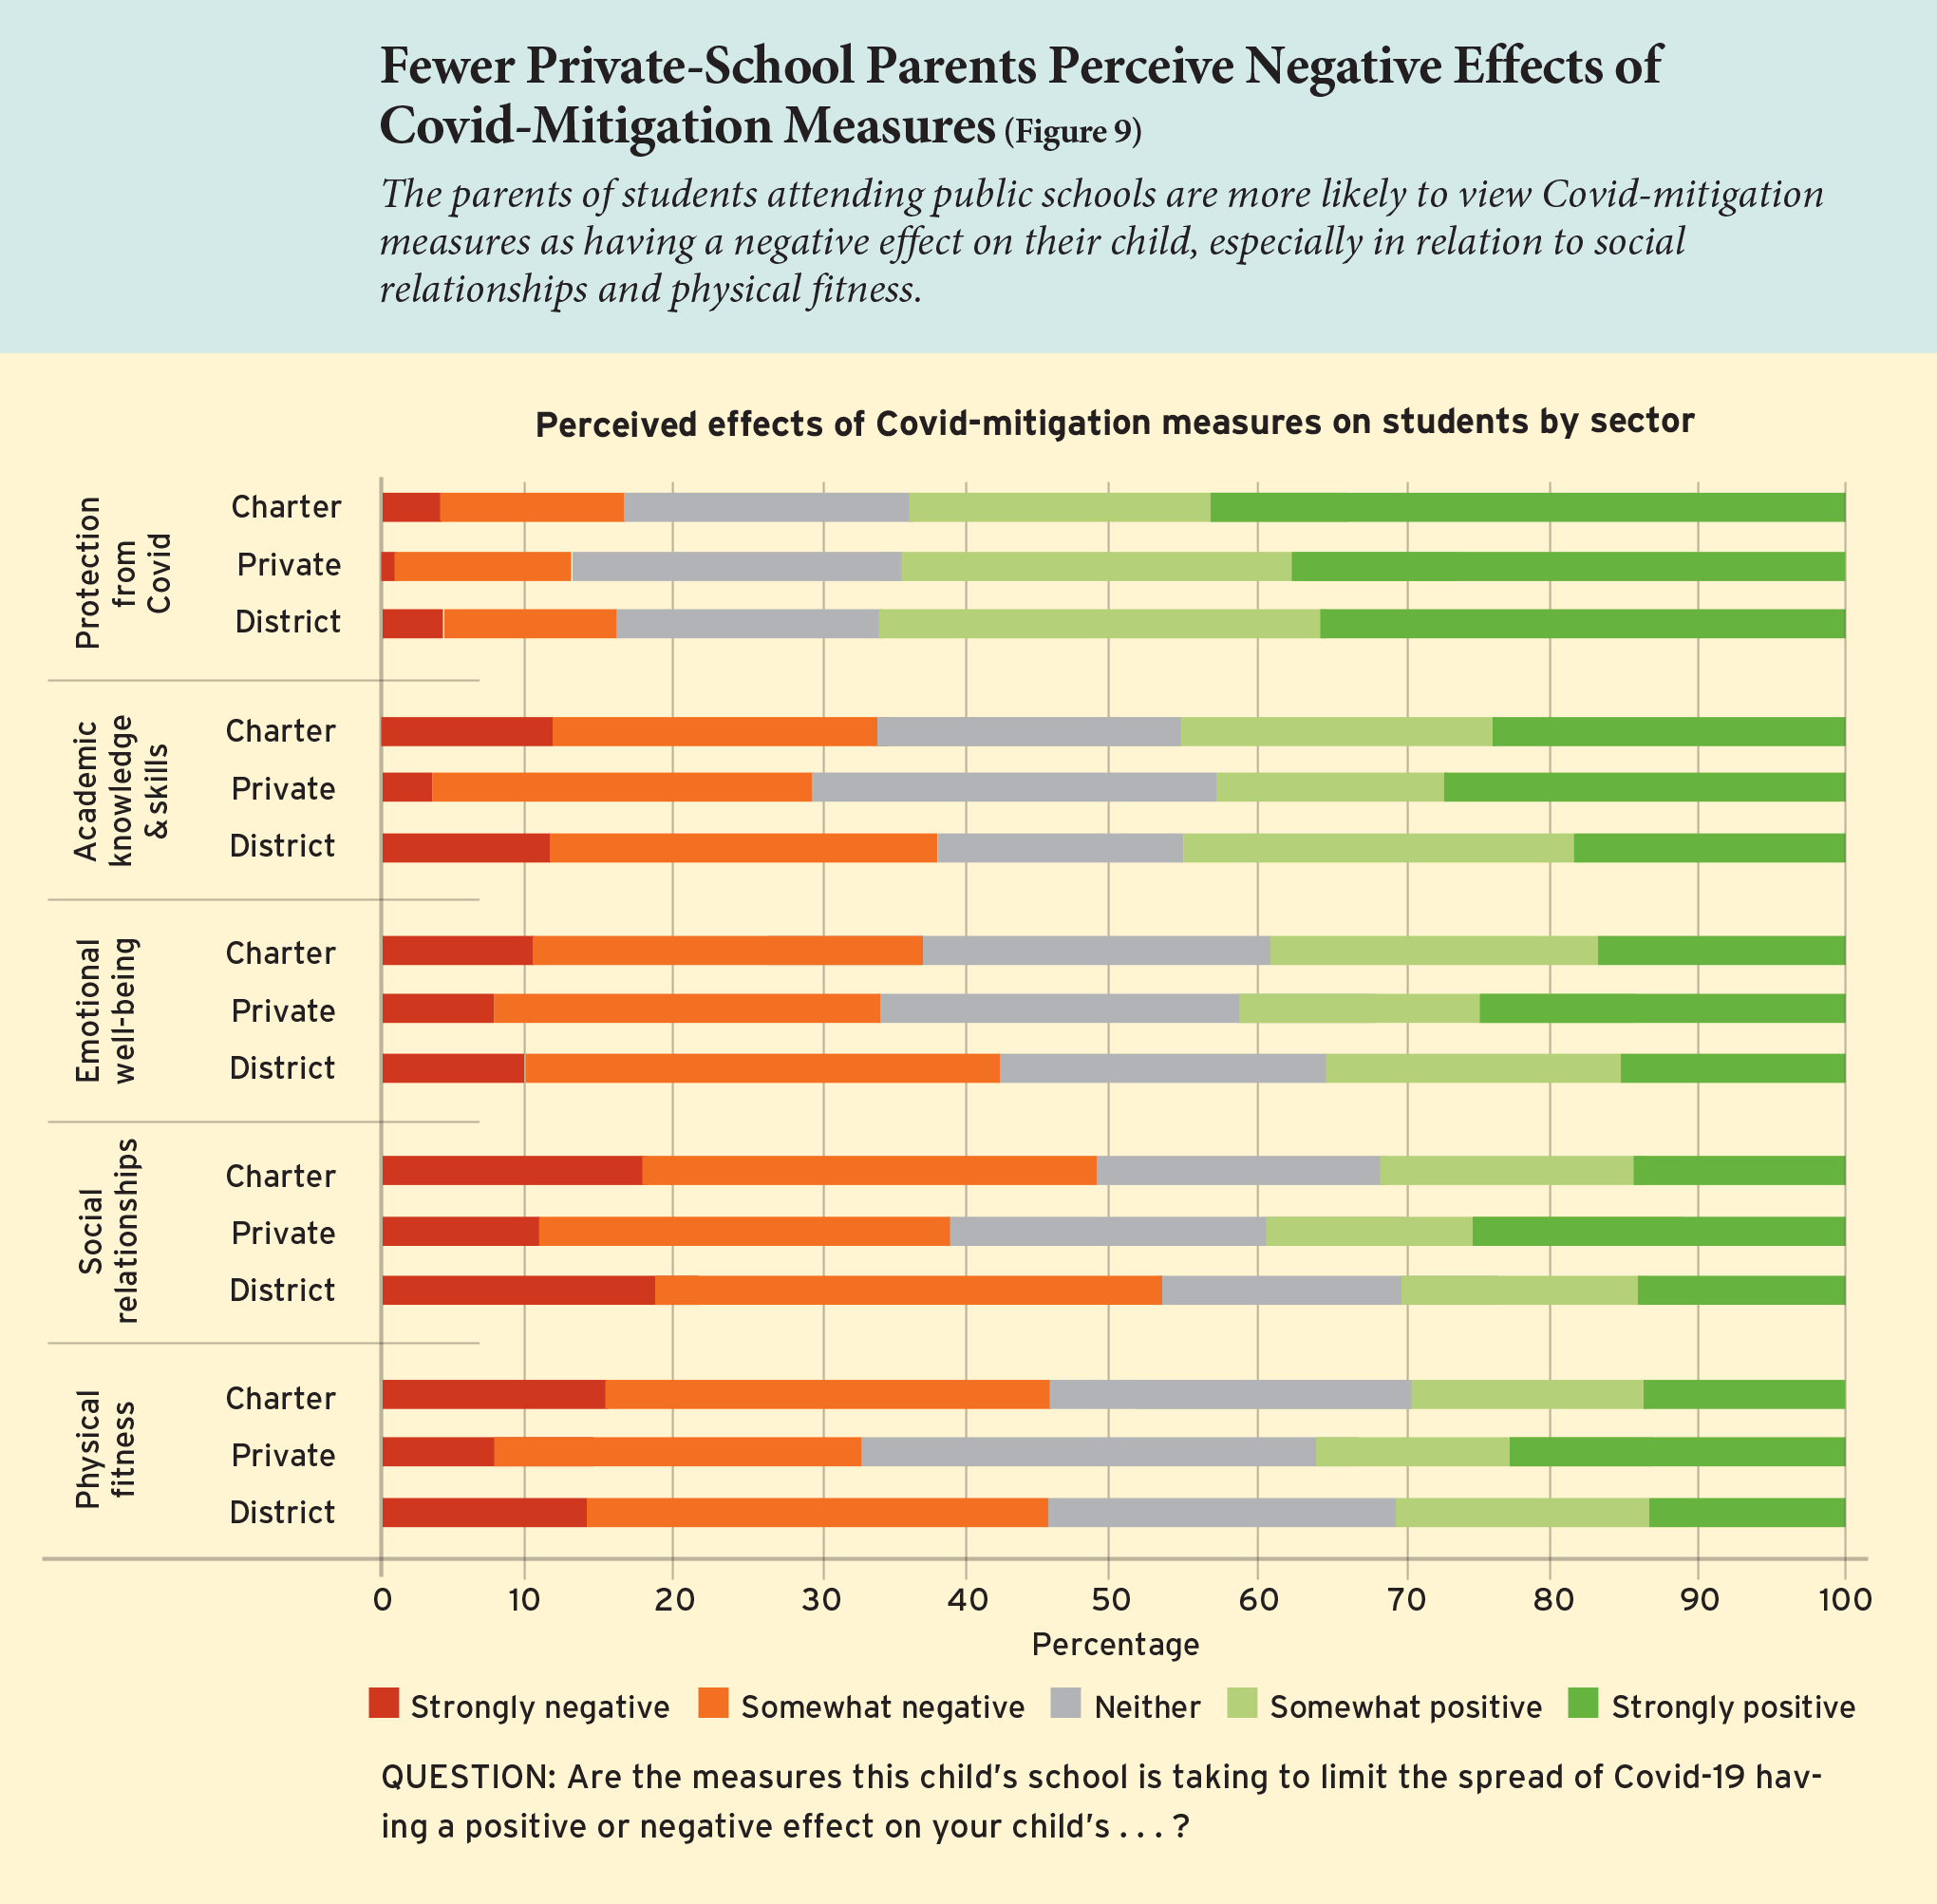 Fewer Private-School Parents Perceive Negative Effects of Covid-Mitigation Measures (Figure 9)